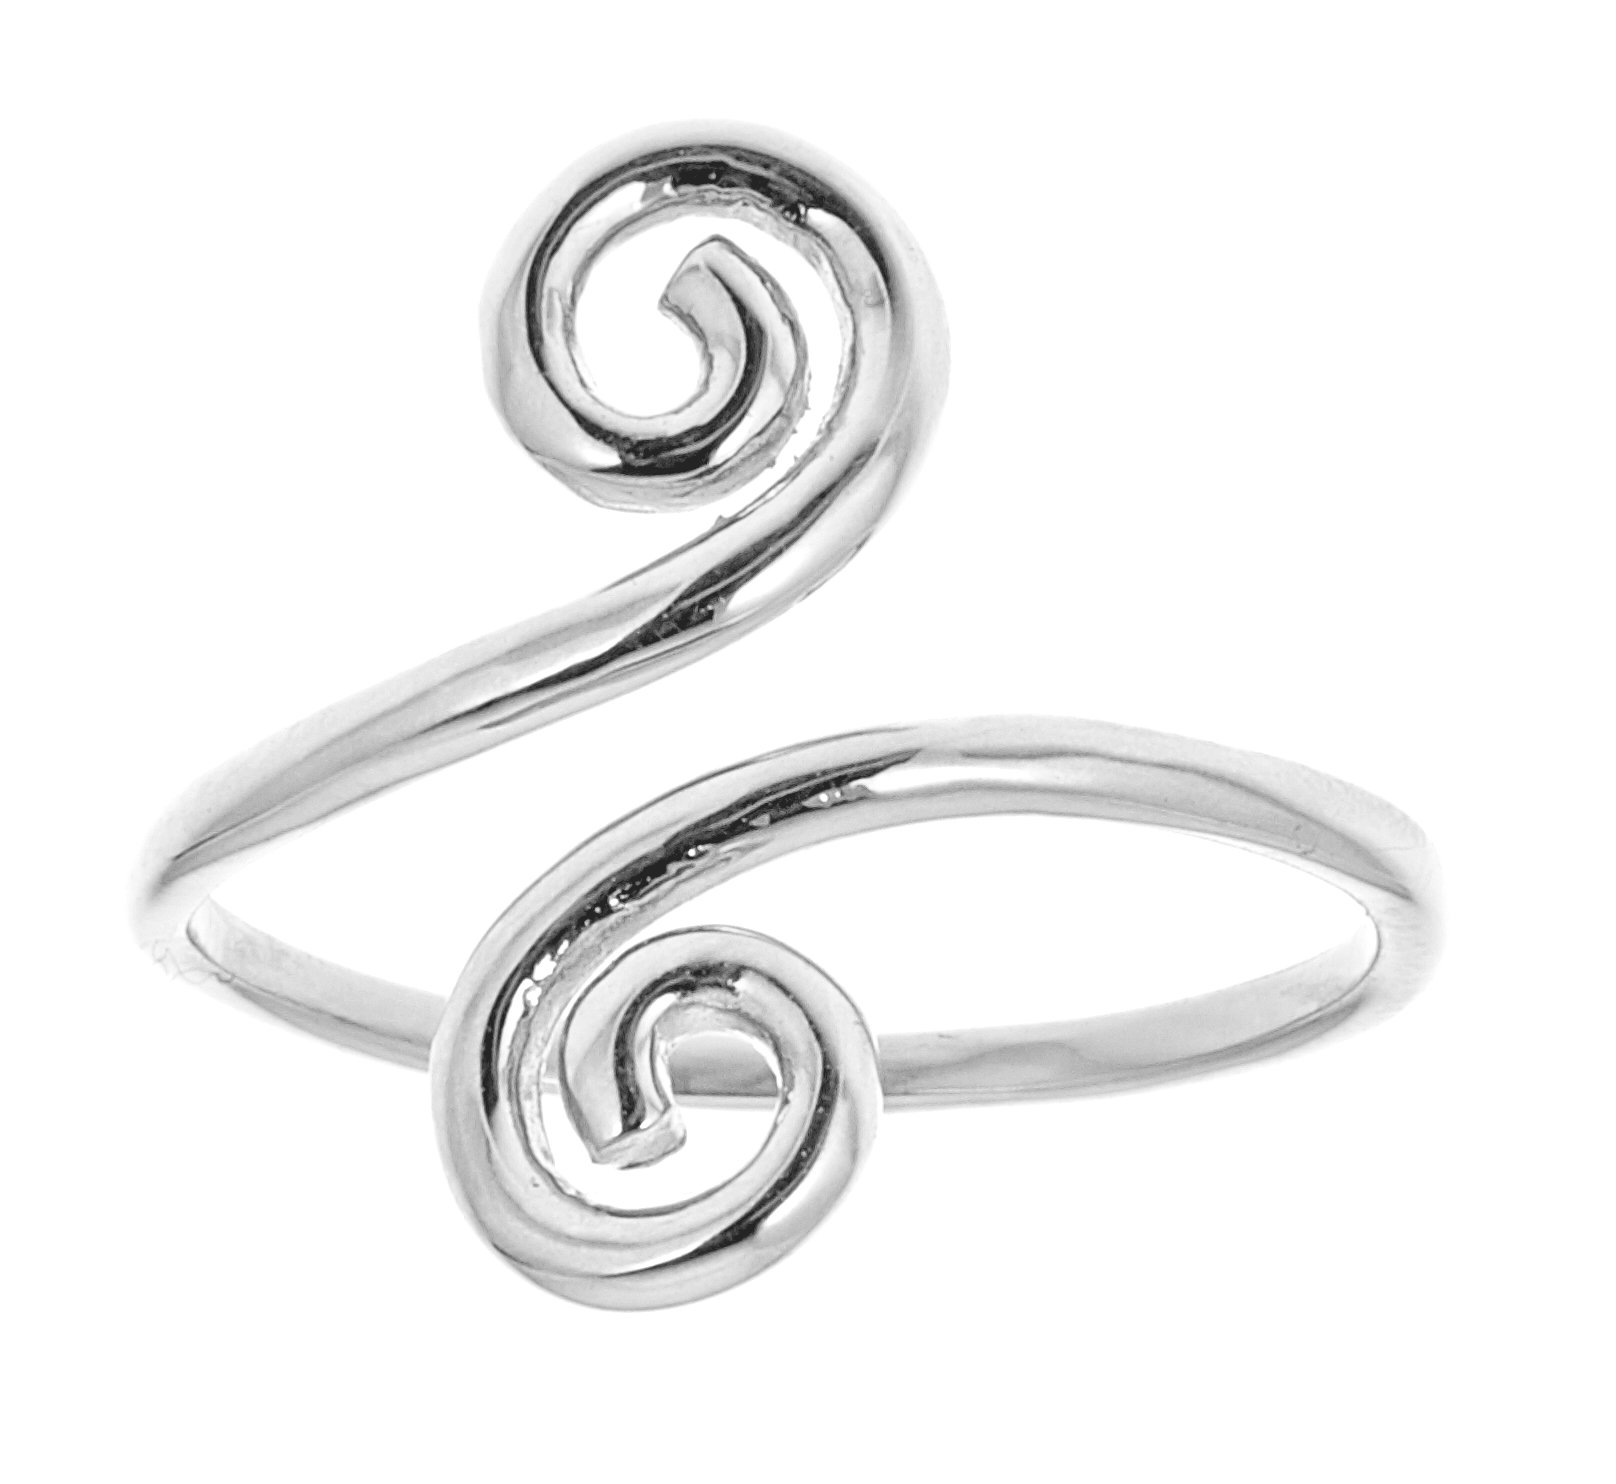 Ritastephens 14k Solid White Gold Swirl Adjustable Ring or Toe Ring by Ritastephens